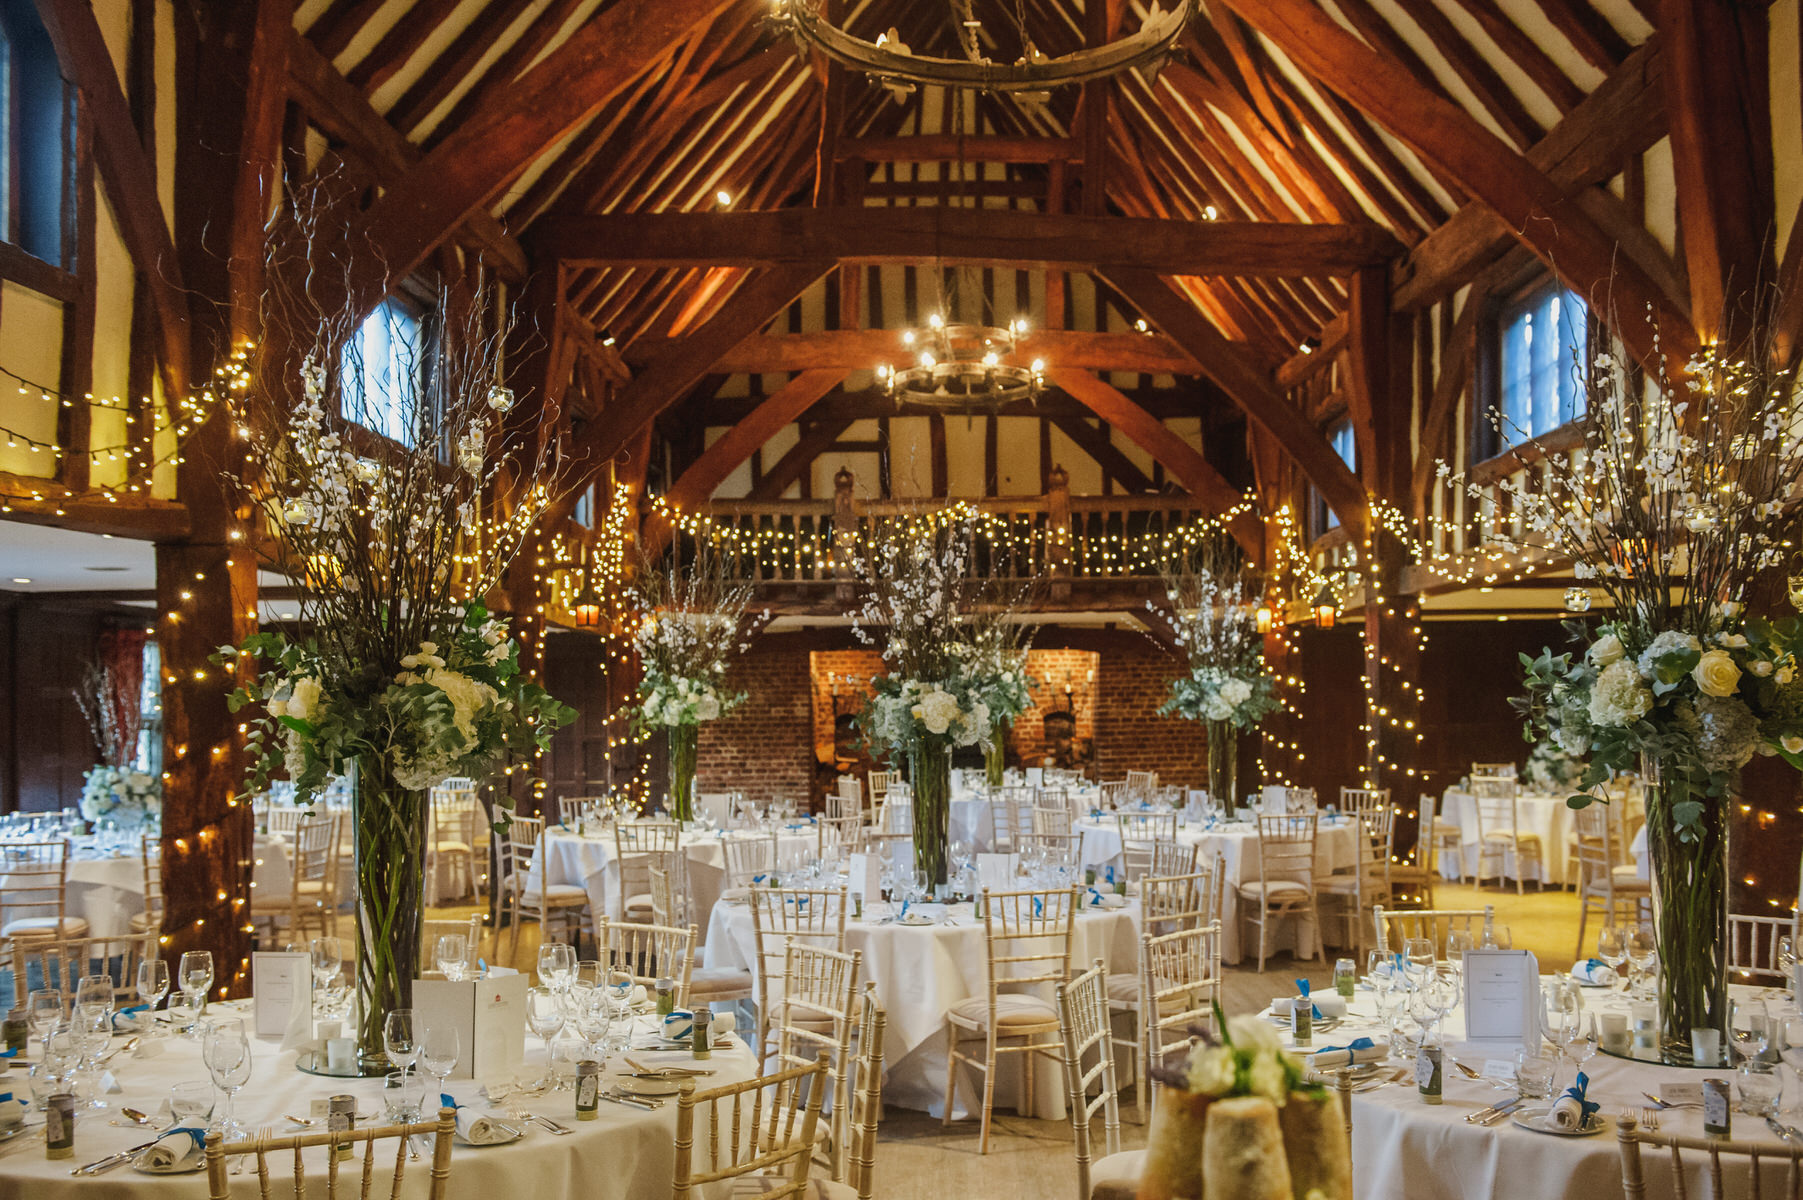 Great Fosters winter wedding